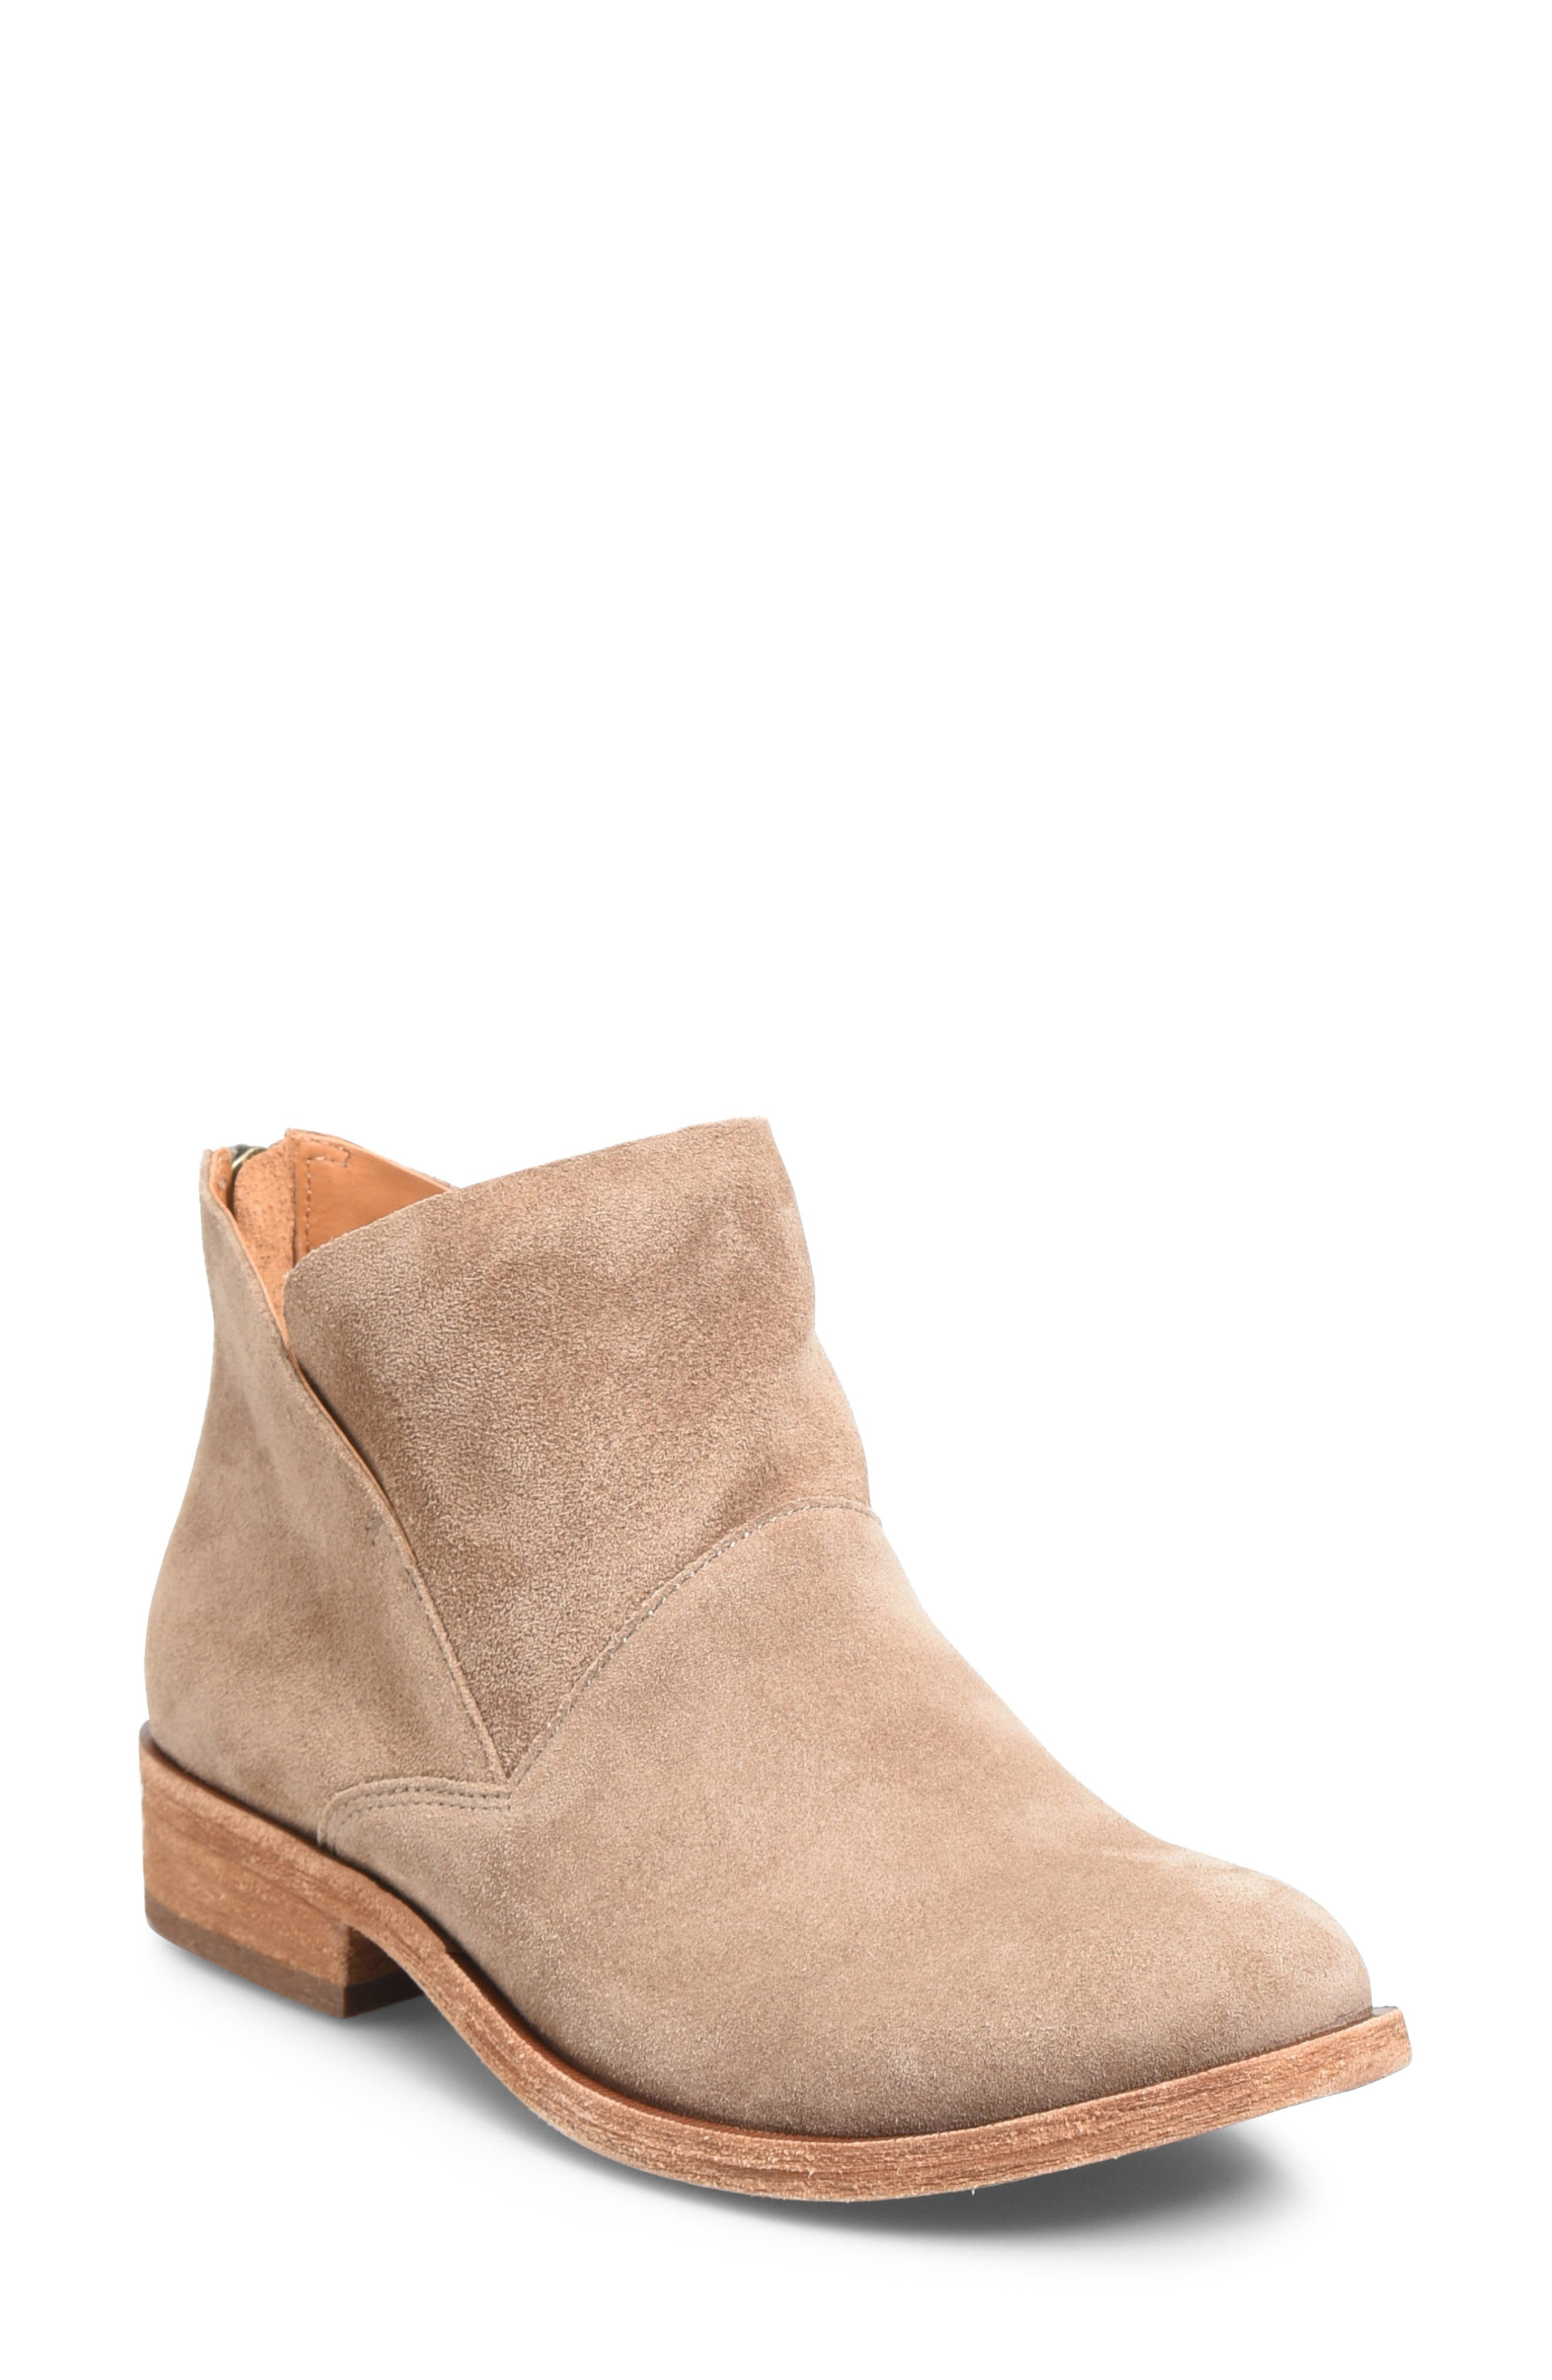 KORK-EASE<SUP>®</SUP>, Ryder Ankle Boot, Main thumbnail 1, color, TAUPE GREY SUEDE